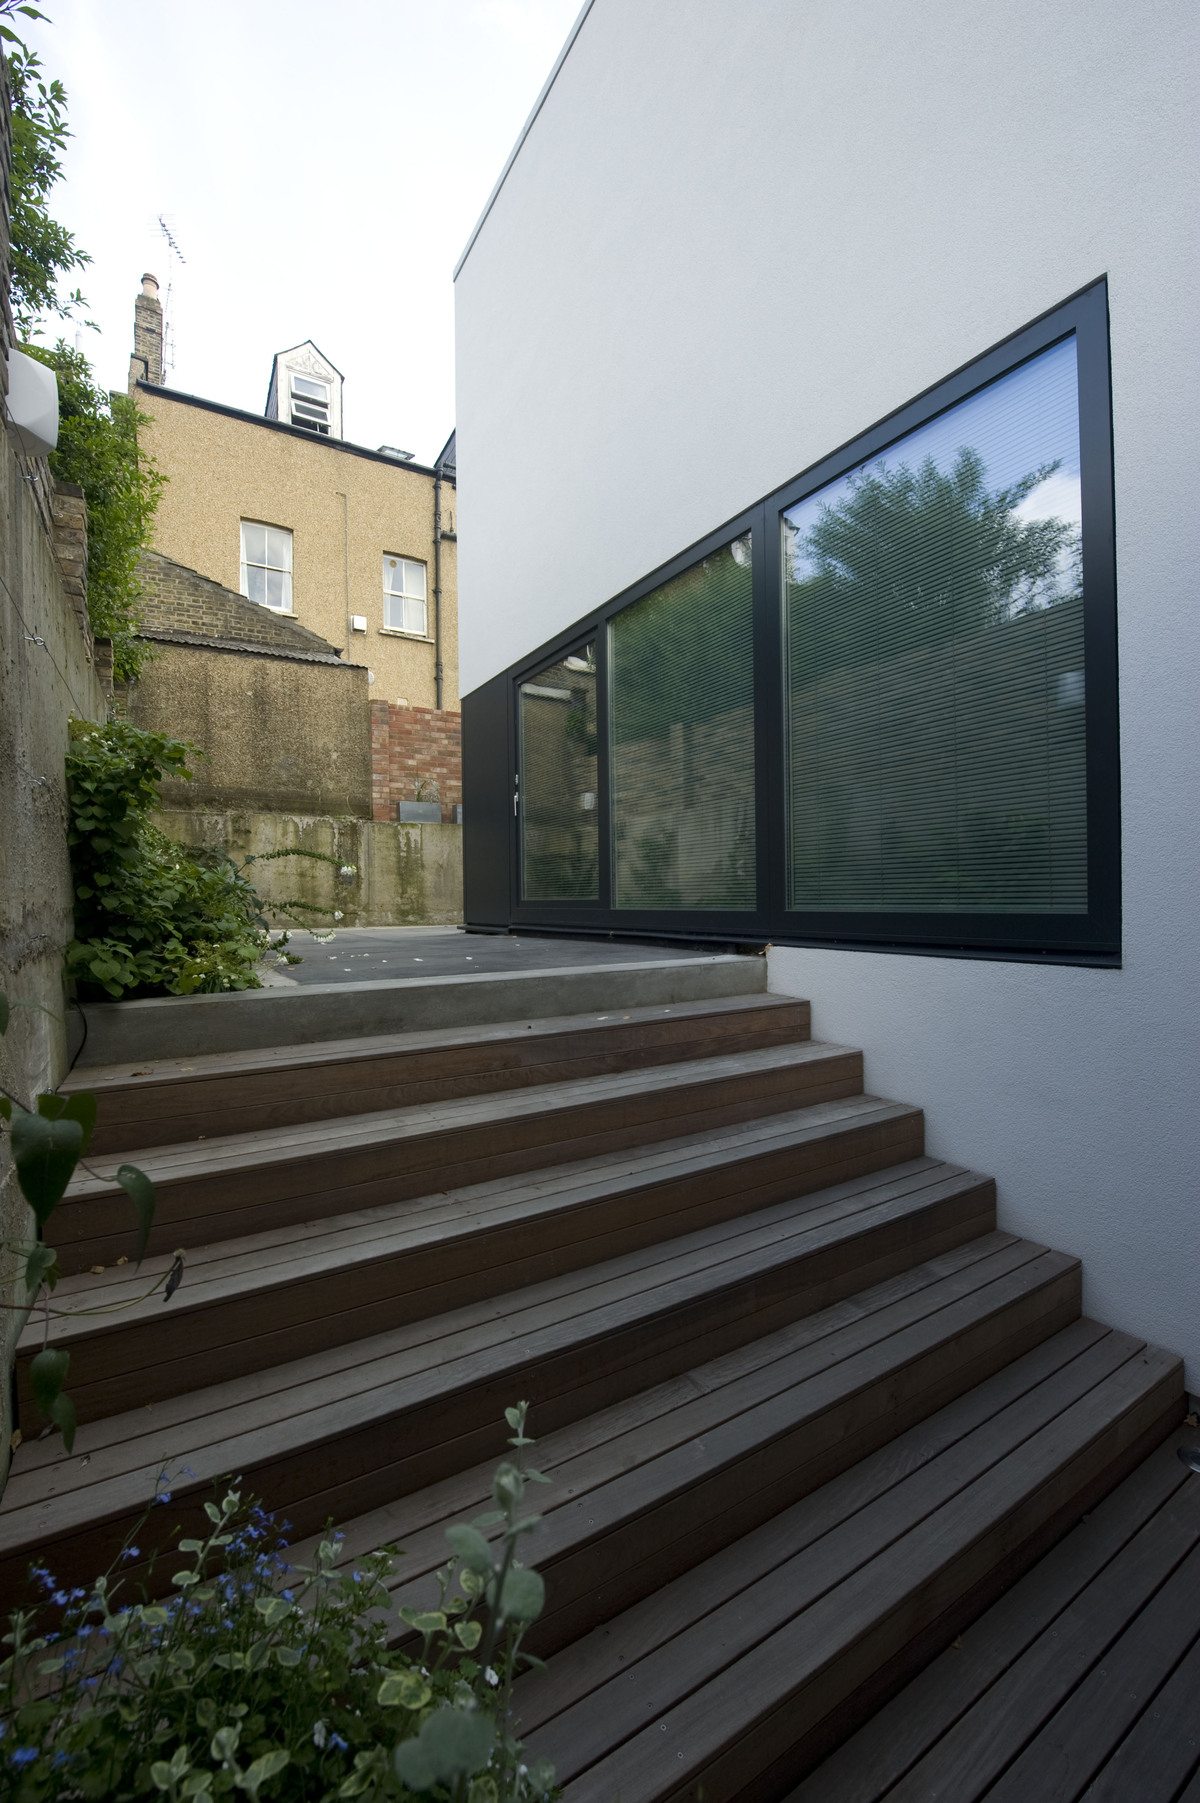 The garden stair at Zog House